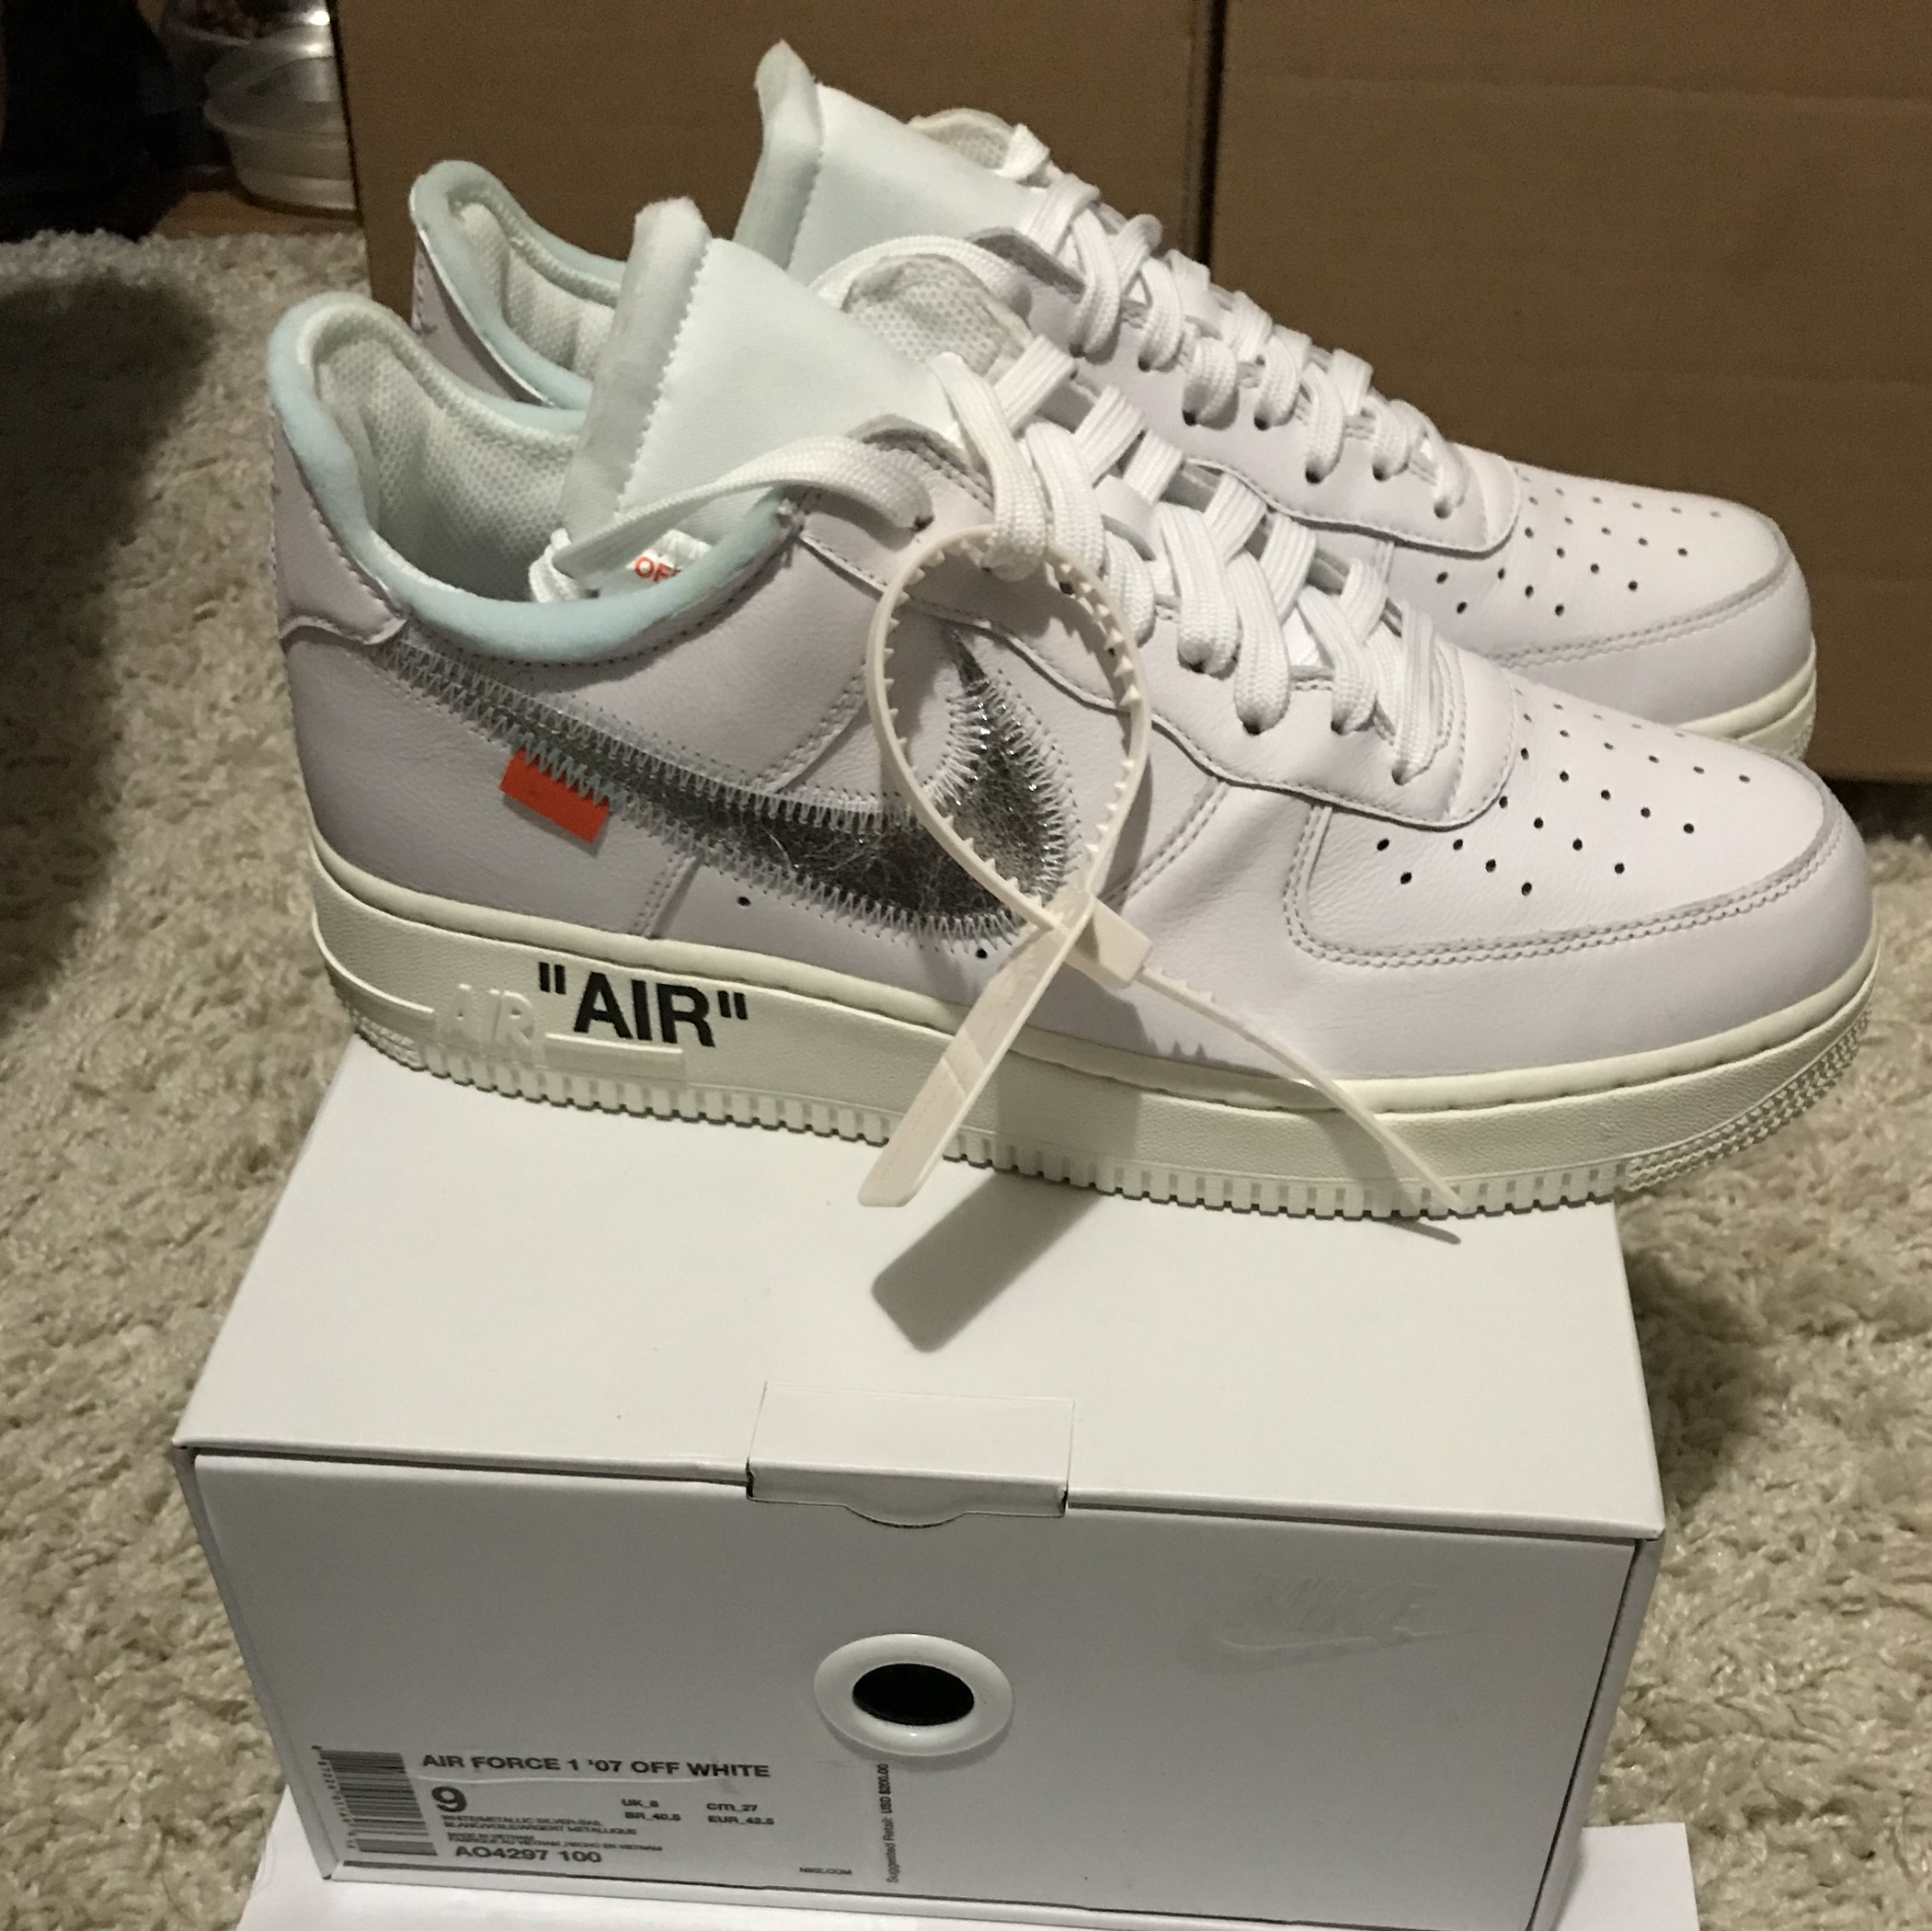 Air Depop White X Force 1 Complexcon Nike Off 0v8nONmw